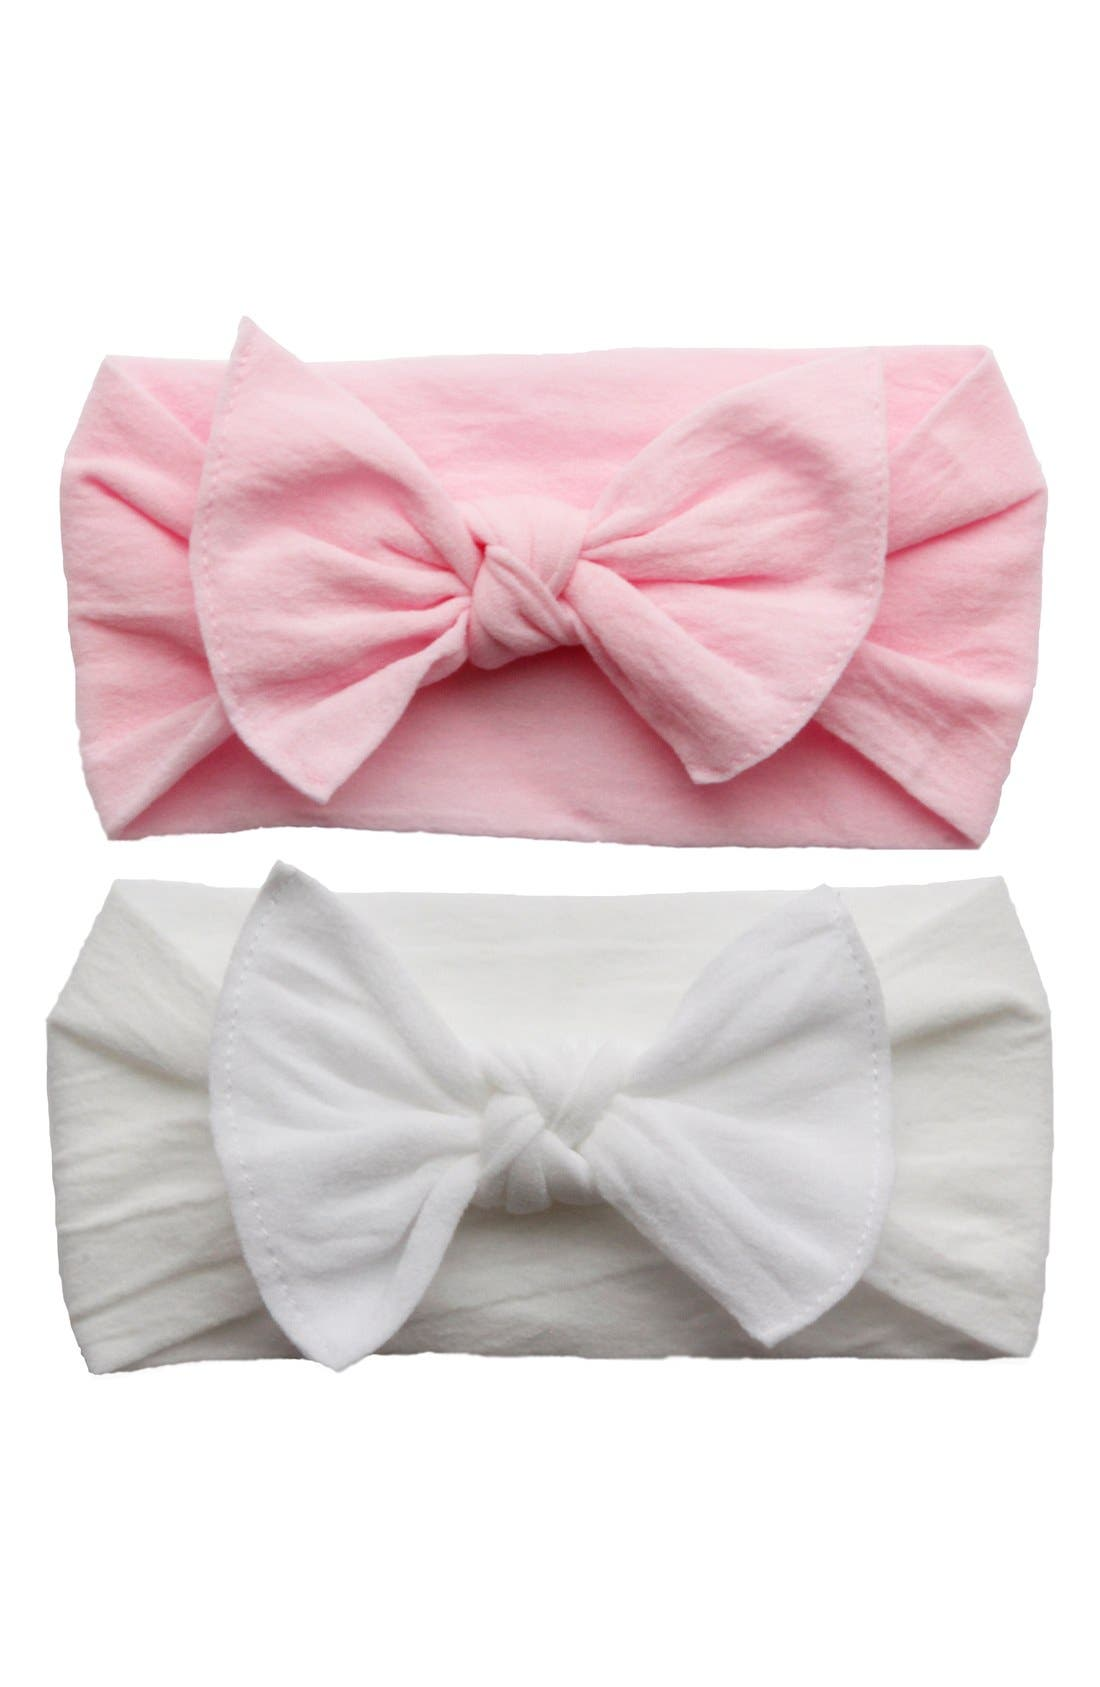 Alternate Image 1 Selected - Baby Bling Headbands (2-Pack)